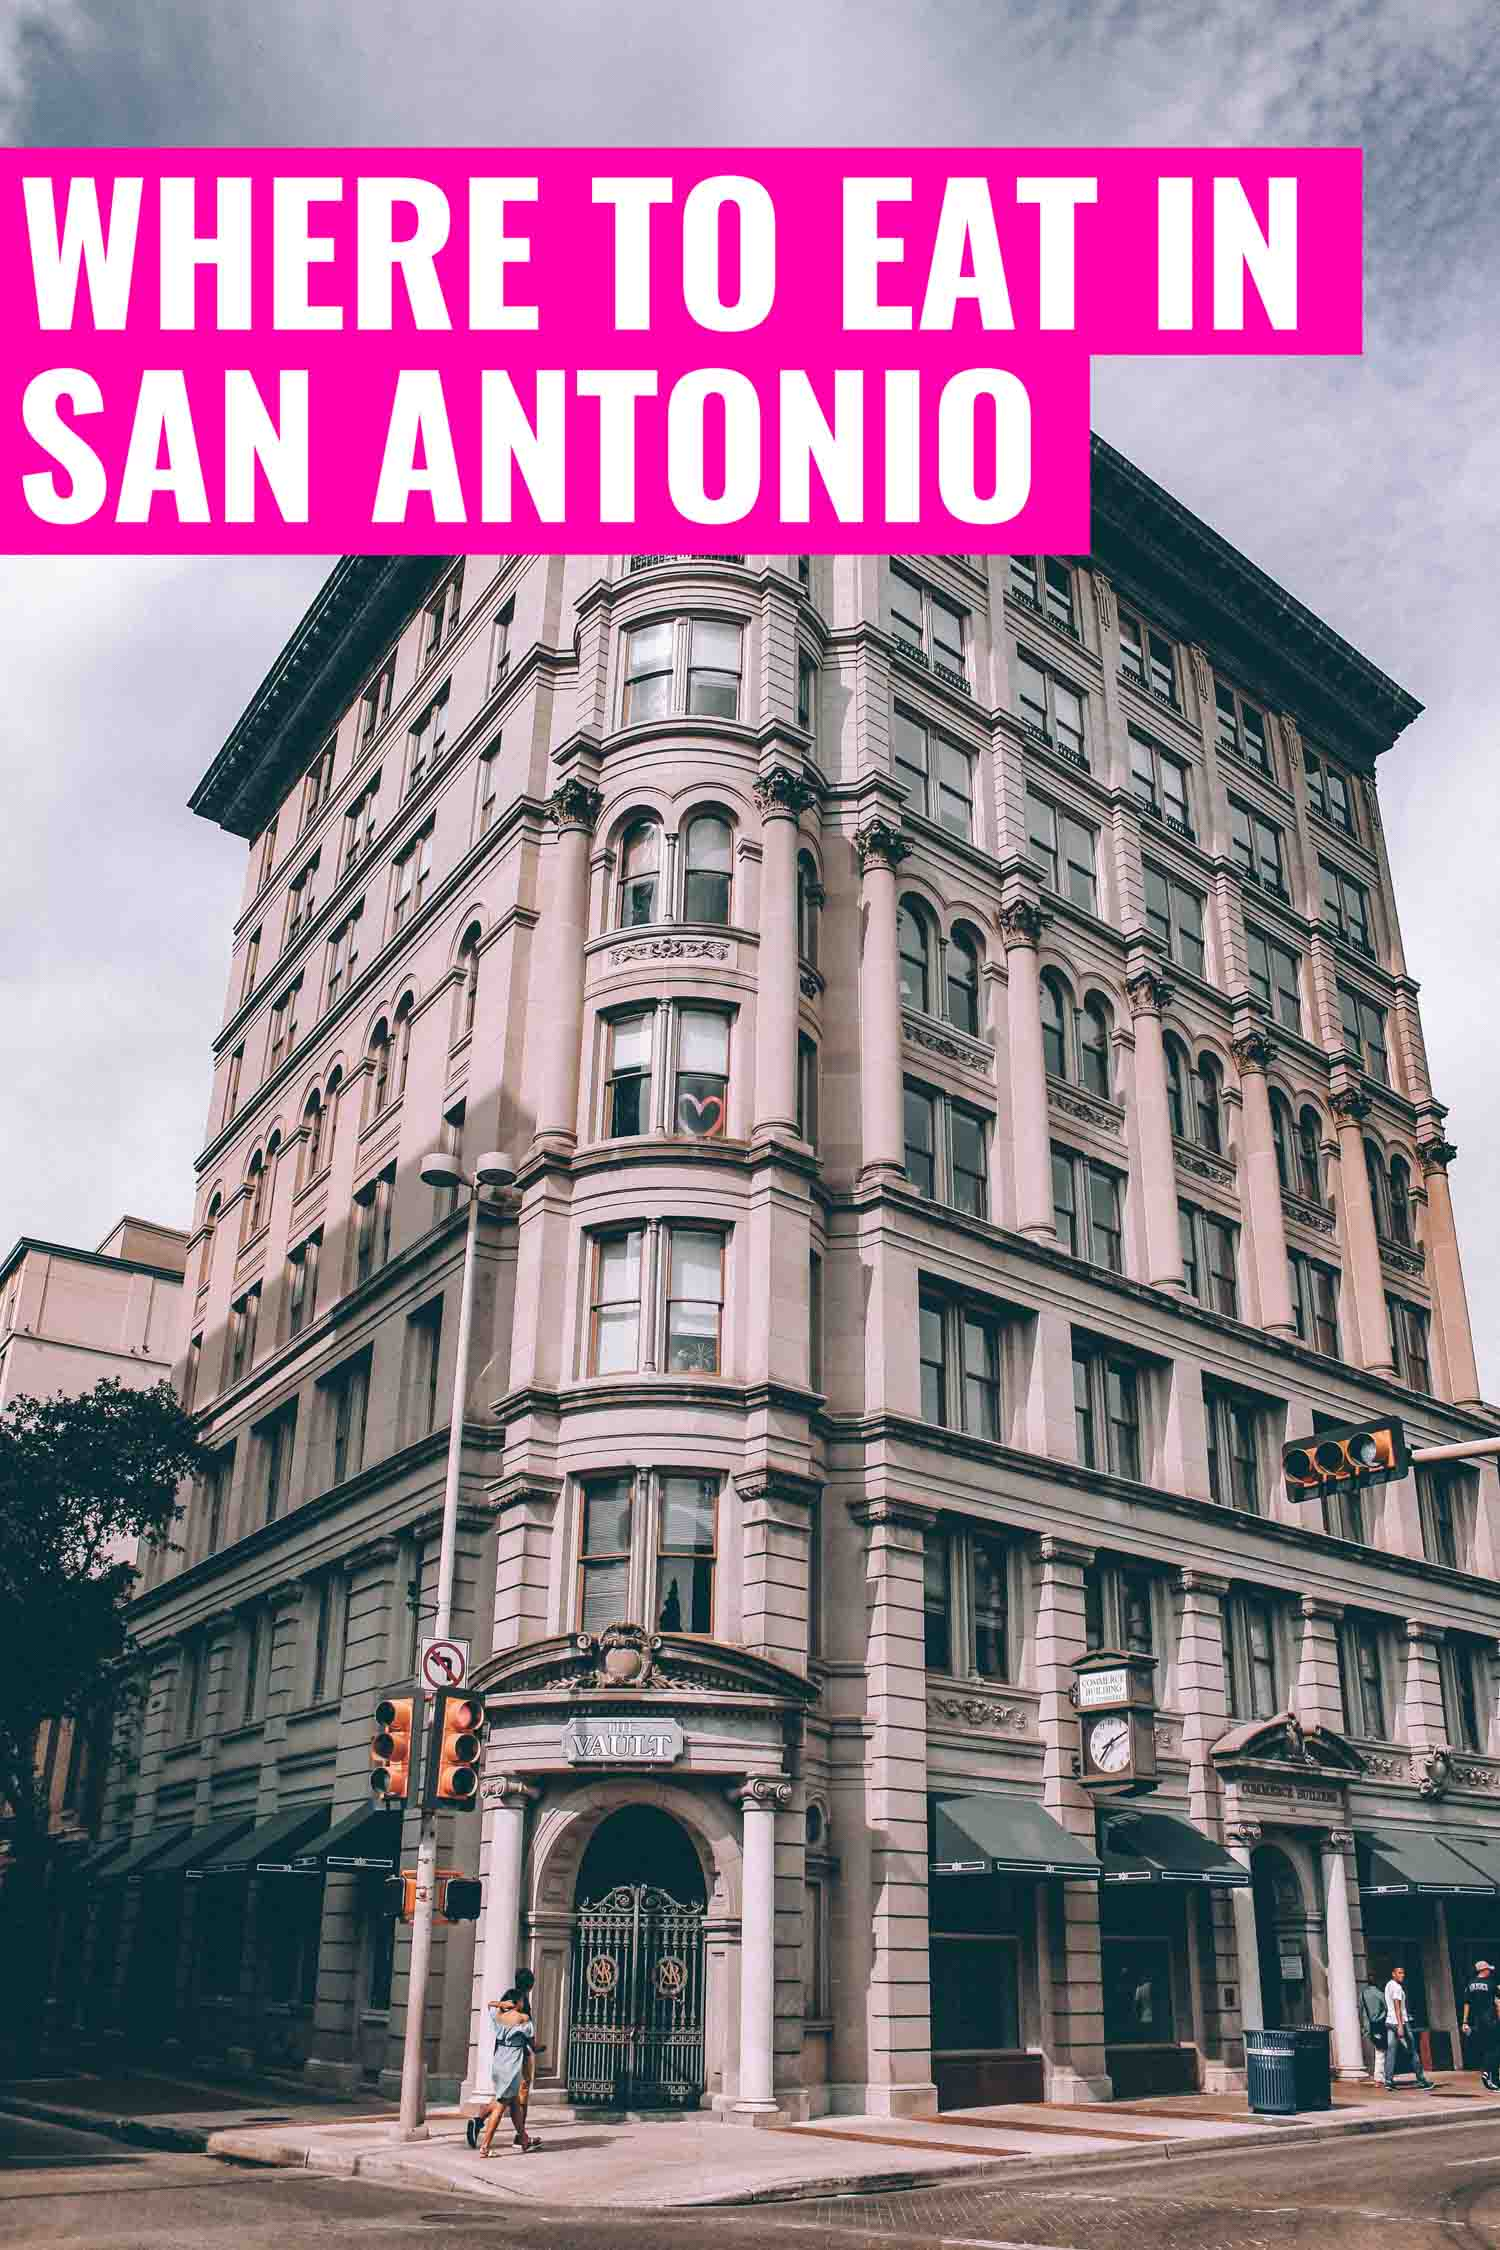 Neoclassical building in San Antonio Texas